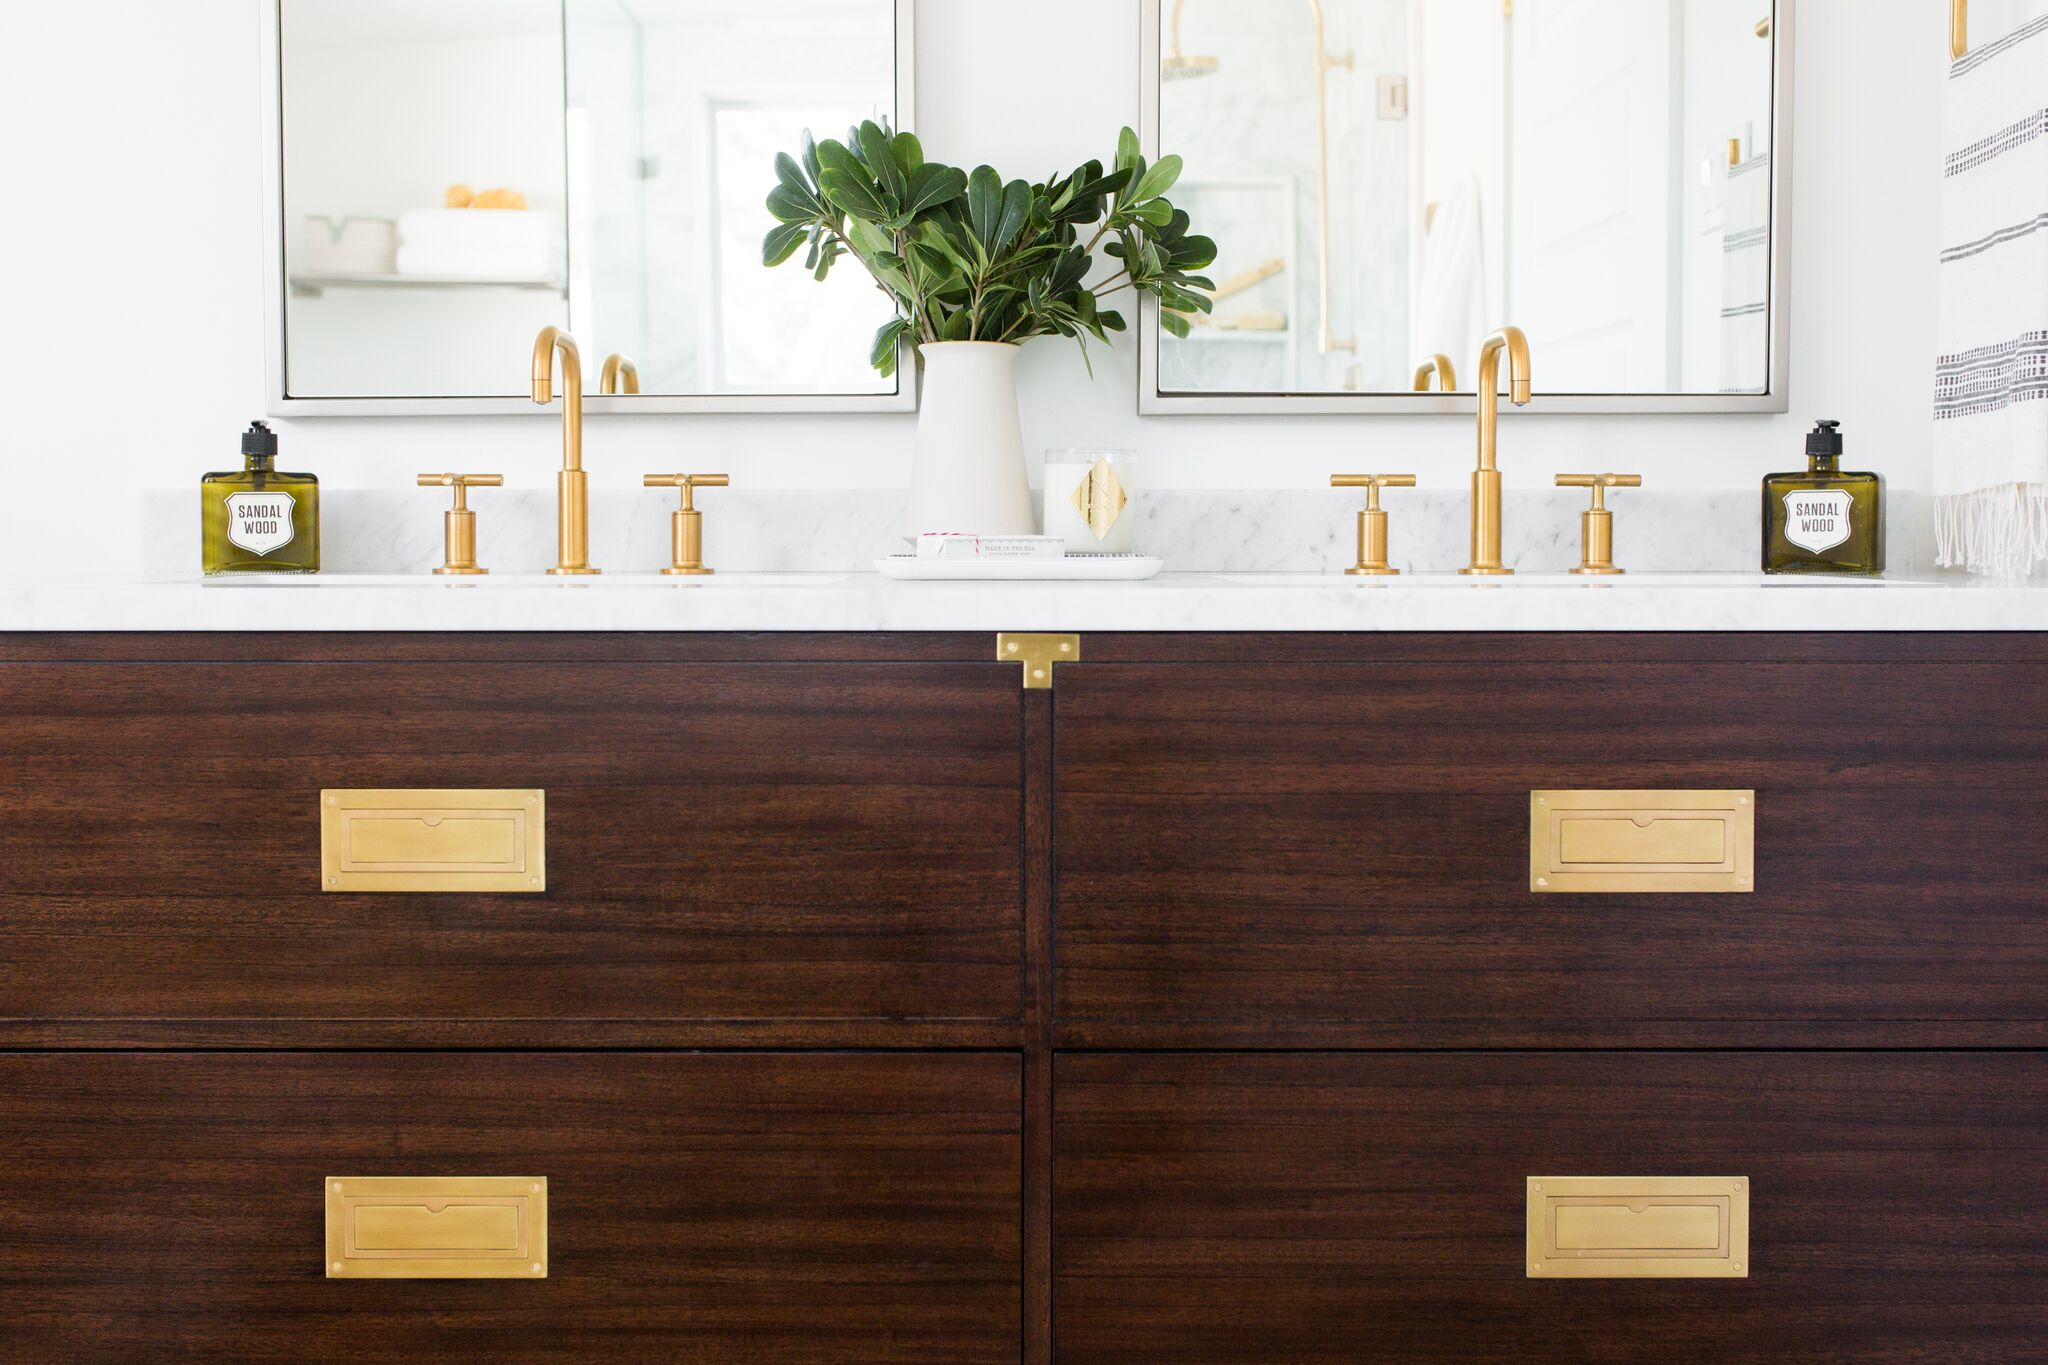 Top drawer of bathroom vanity